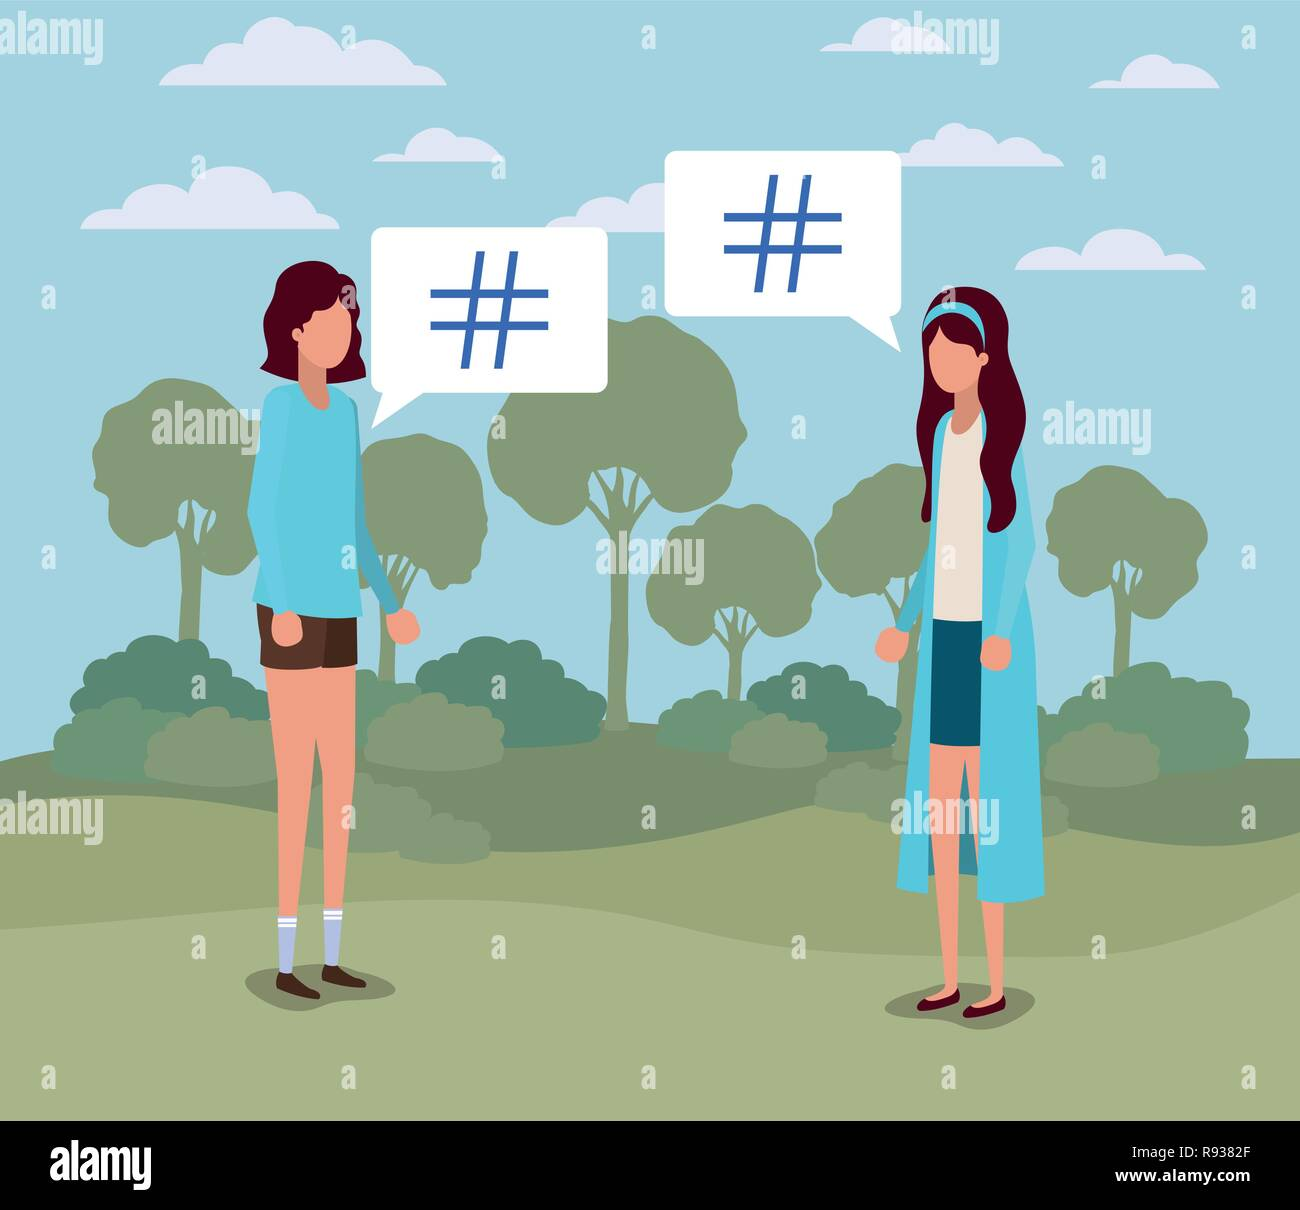 young women with pound key in speech bubble on the camp - Stock Image